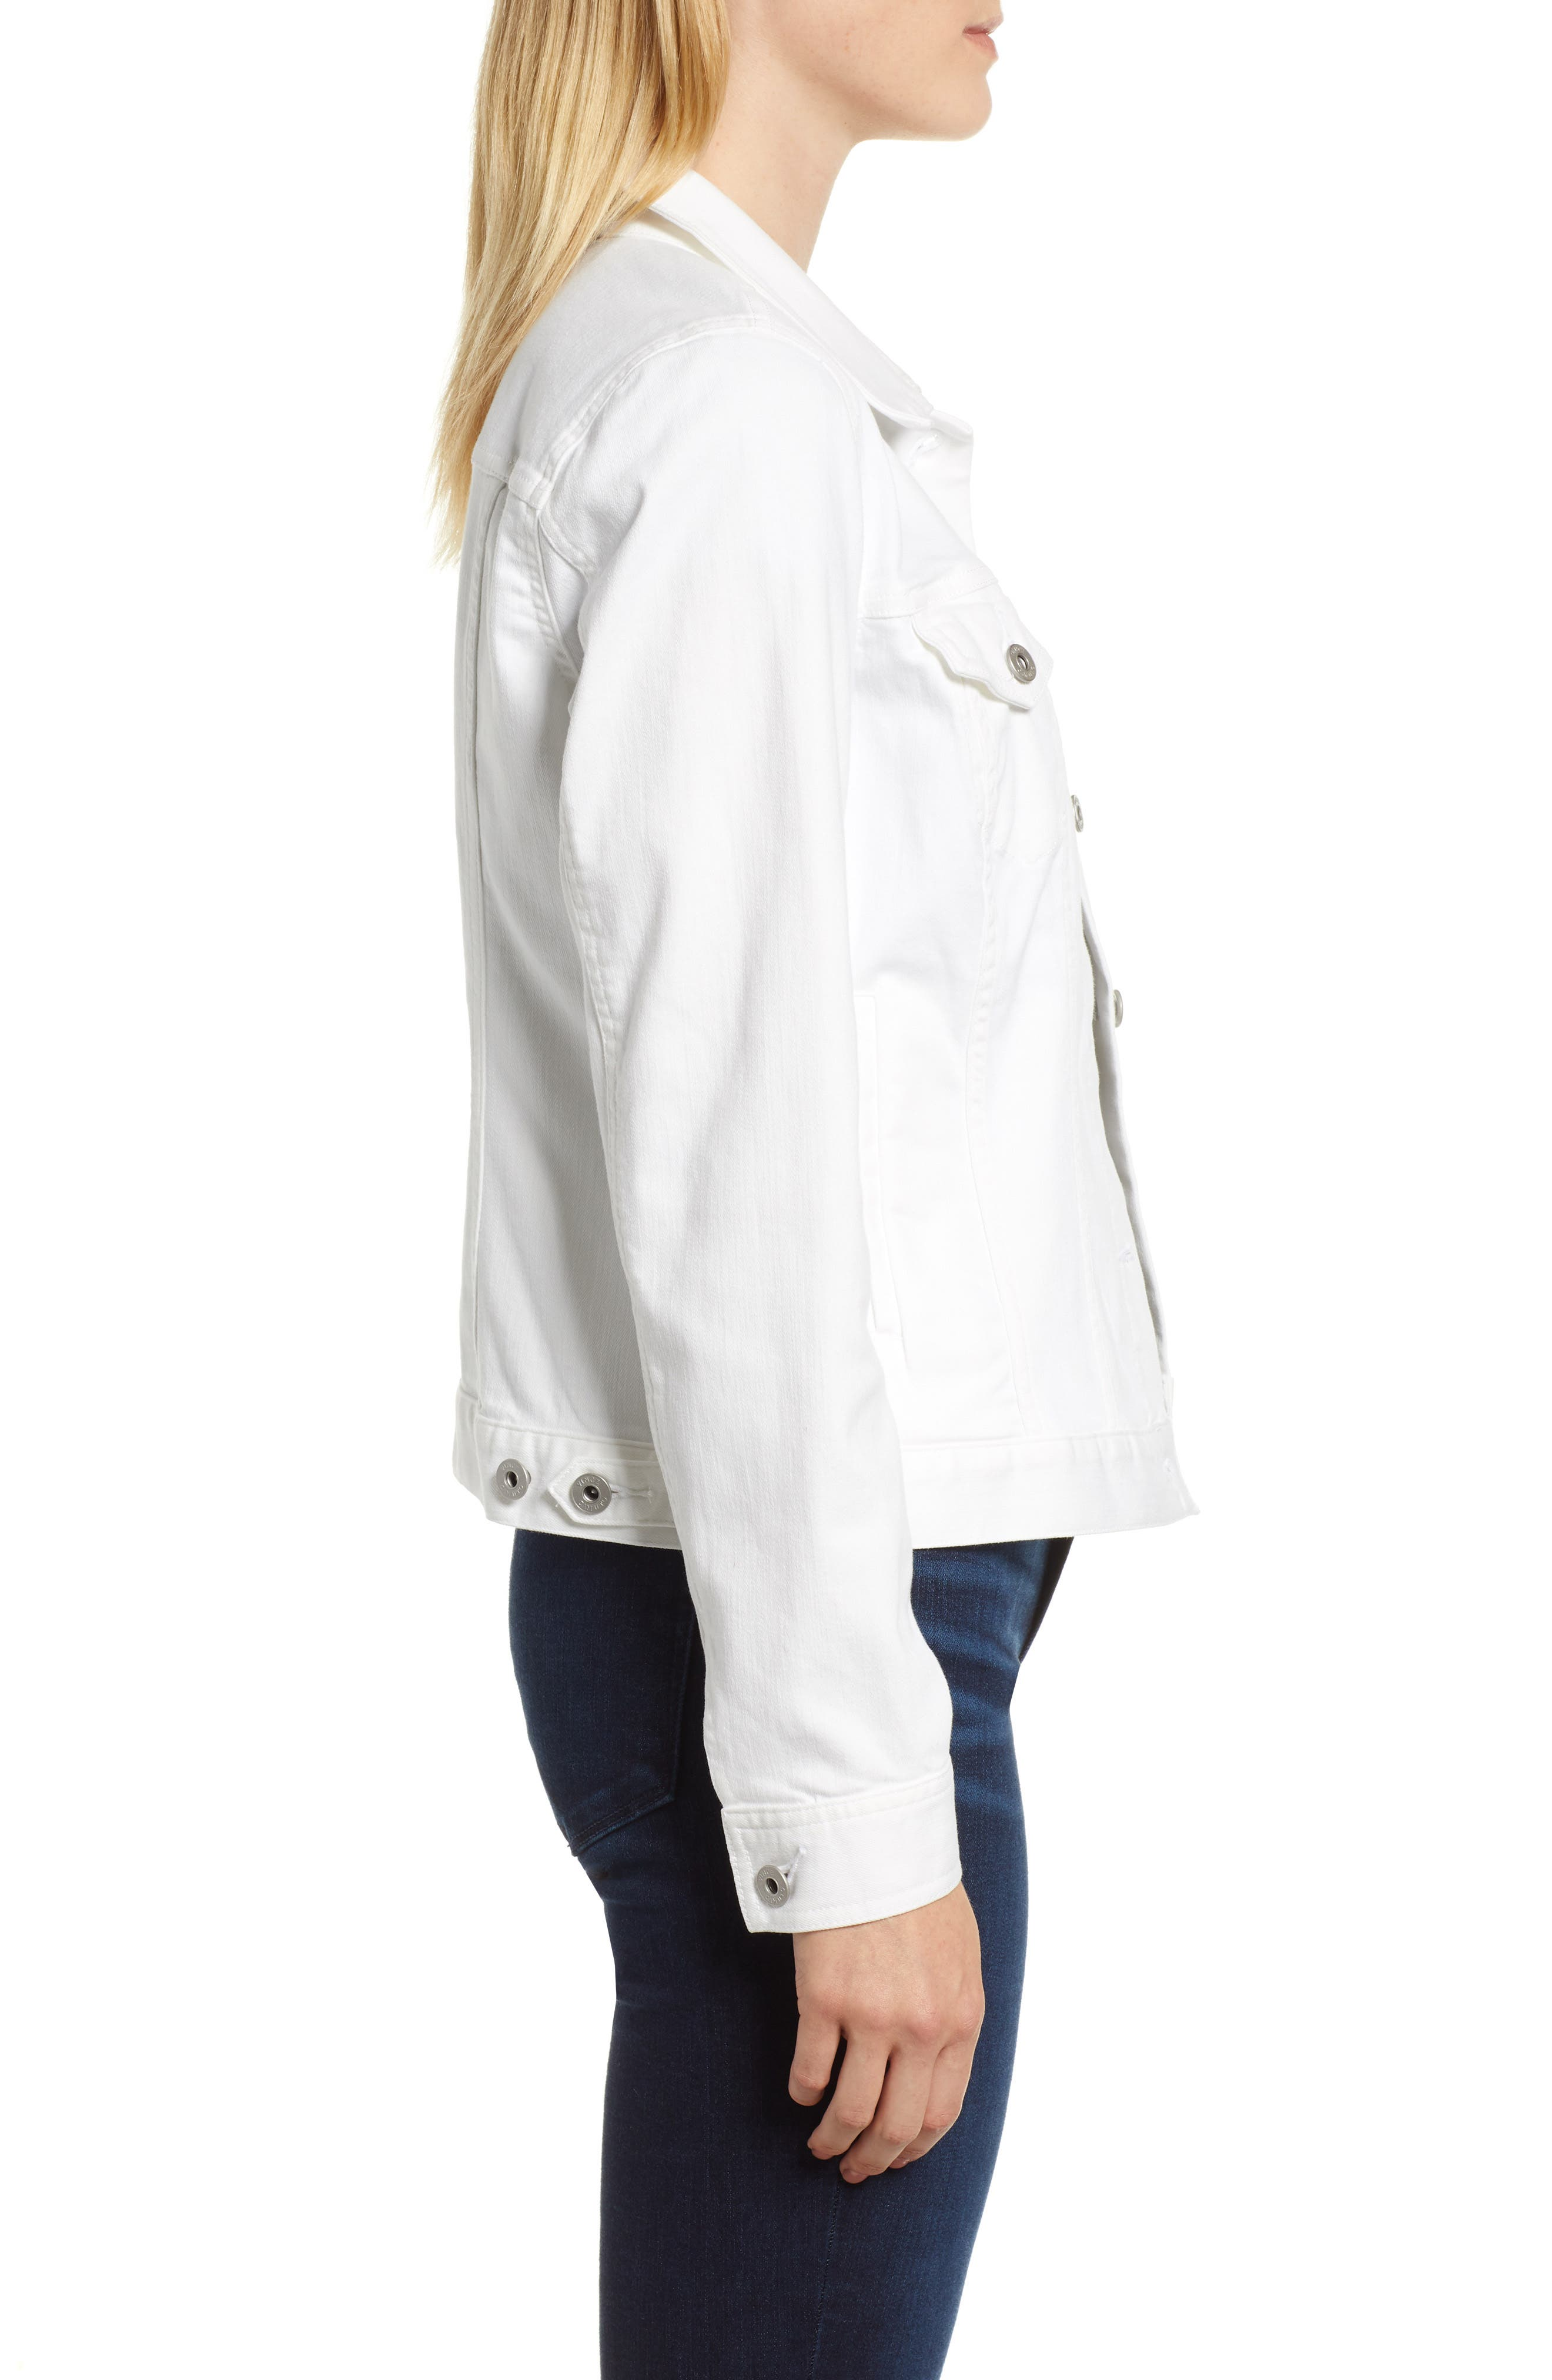 VINCE CAMUTO, Two by Vince Camuto Denim Jacket, Alternate thumbnail 4, color, ULTRA WHITE